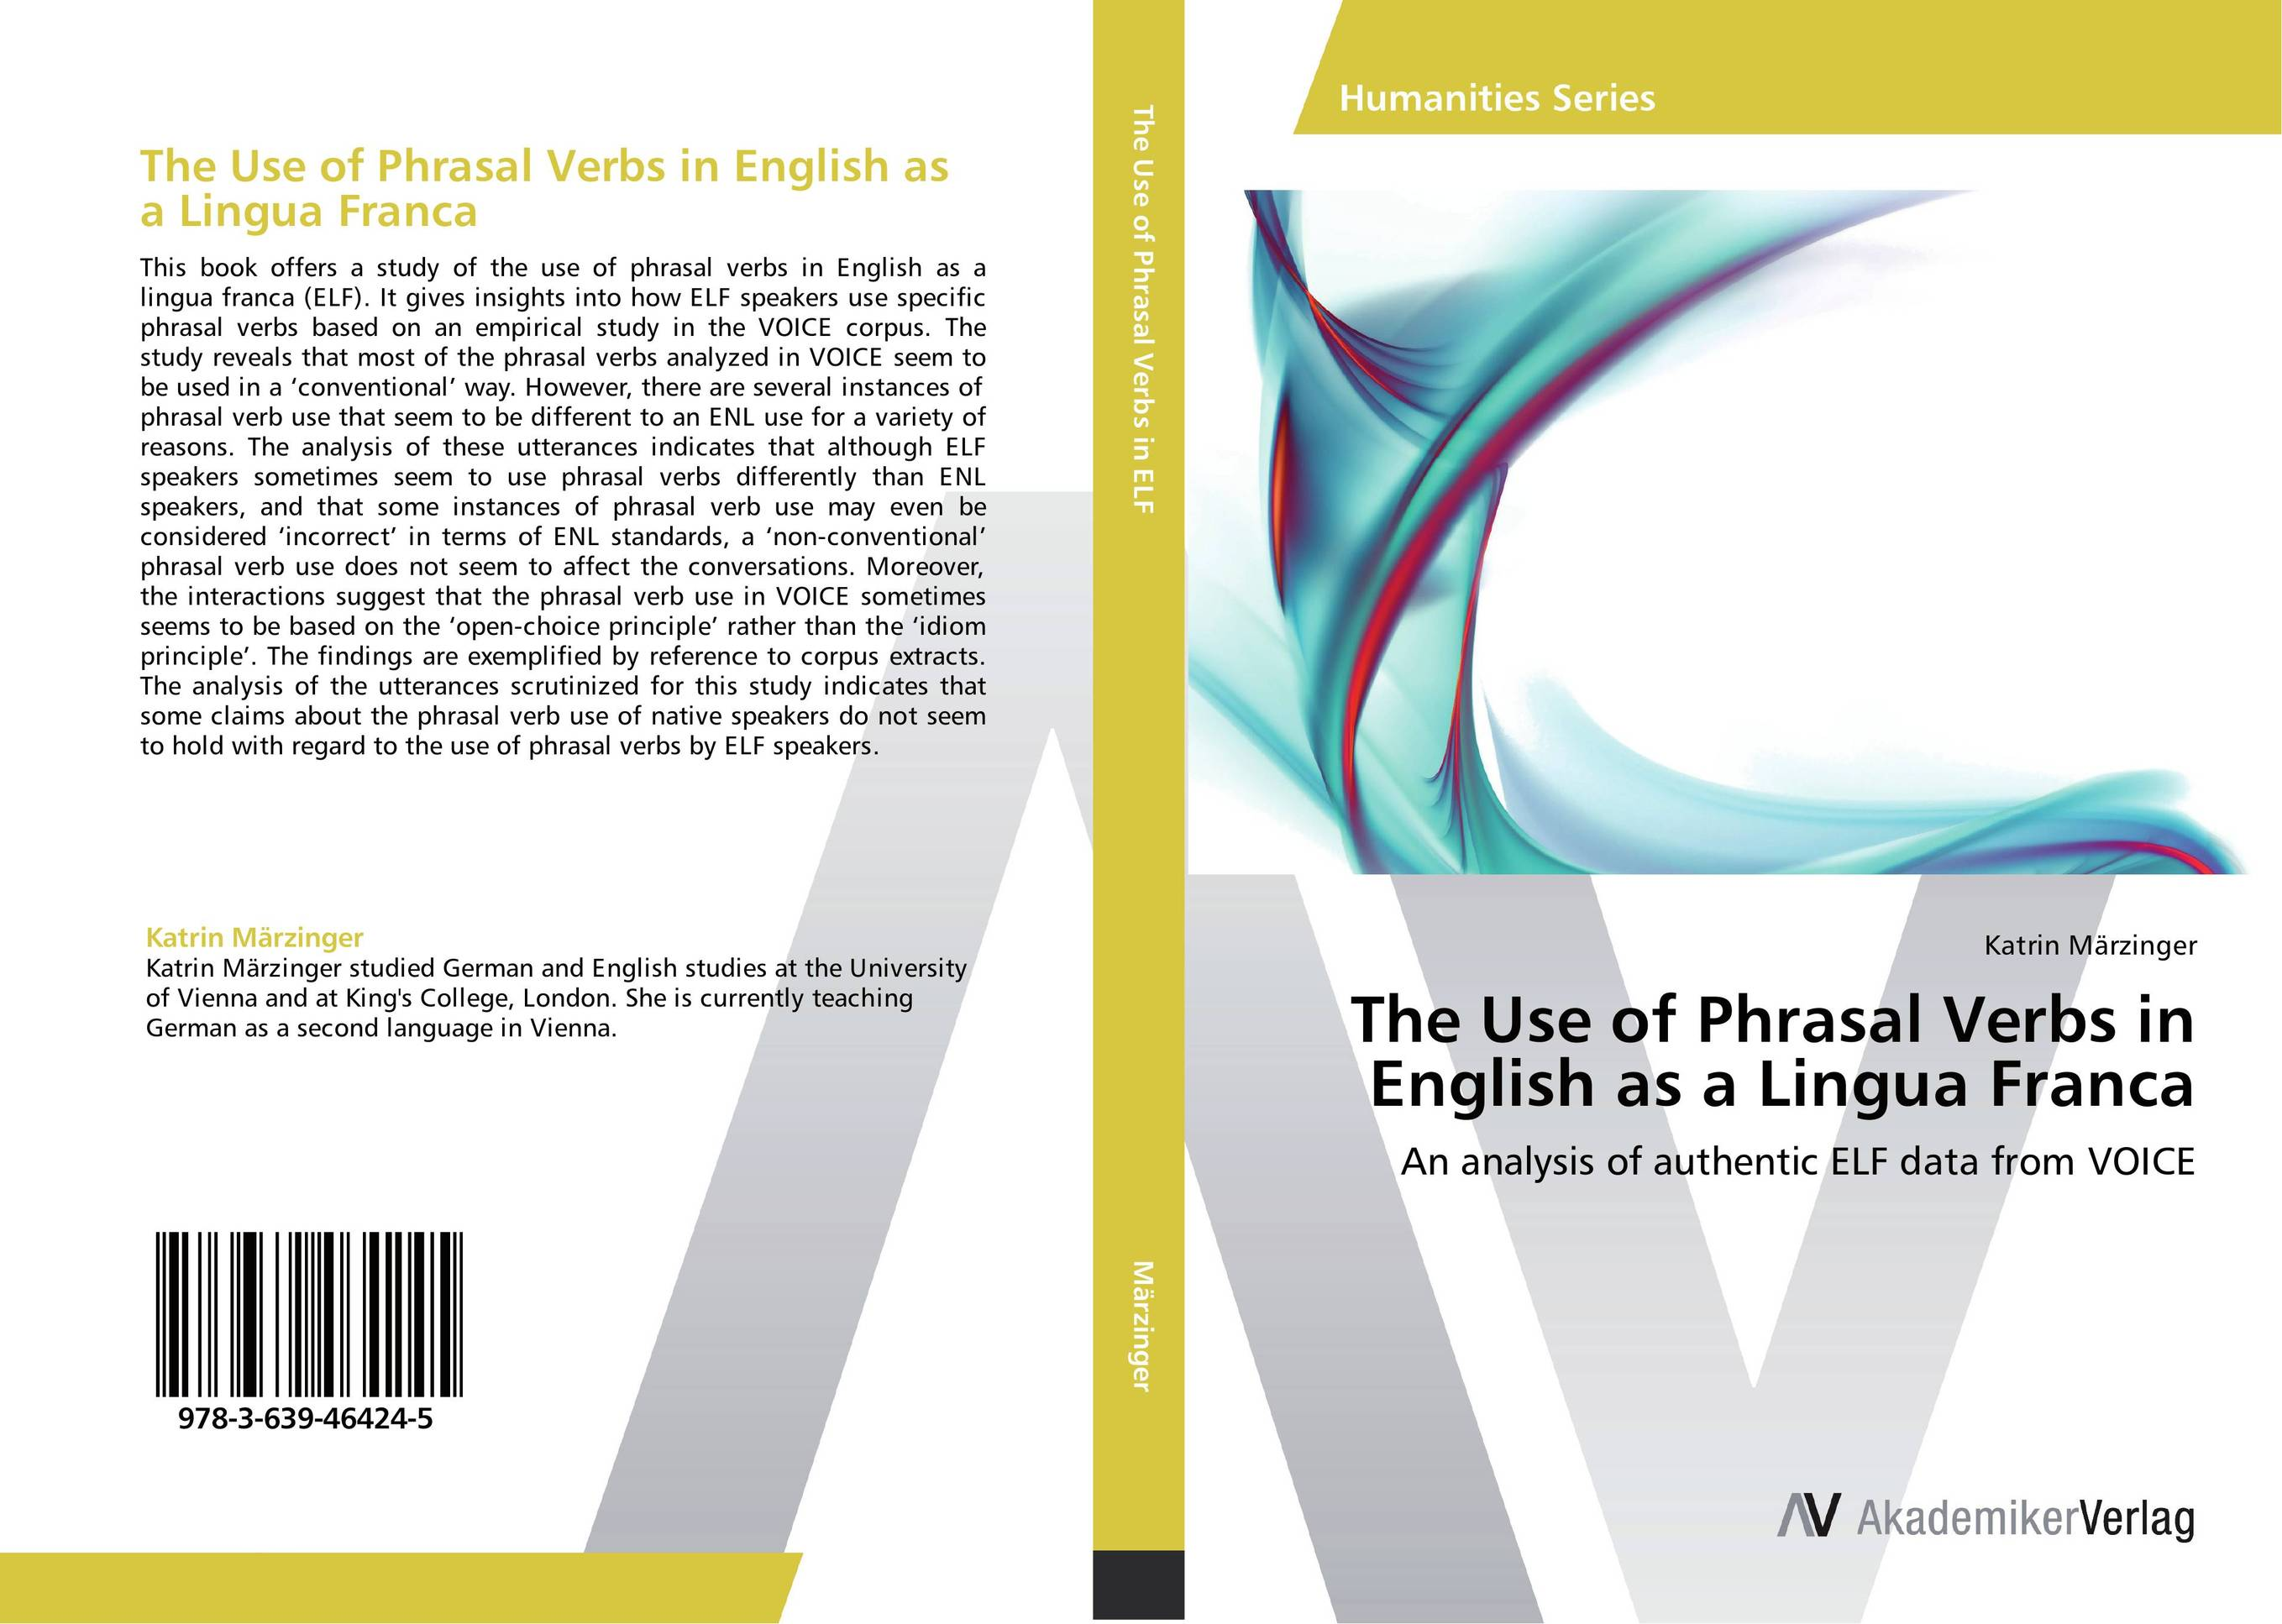 The Use of Phrasal Verbs in English as a Lingua Franca a case study of the use of bim and cobie for facility management